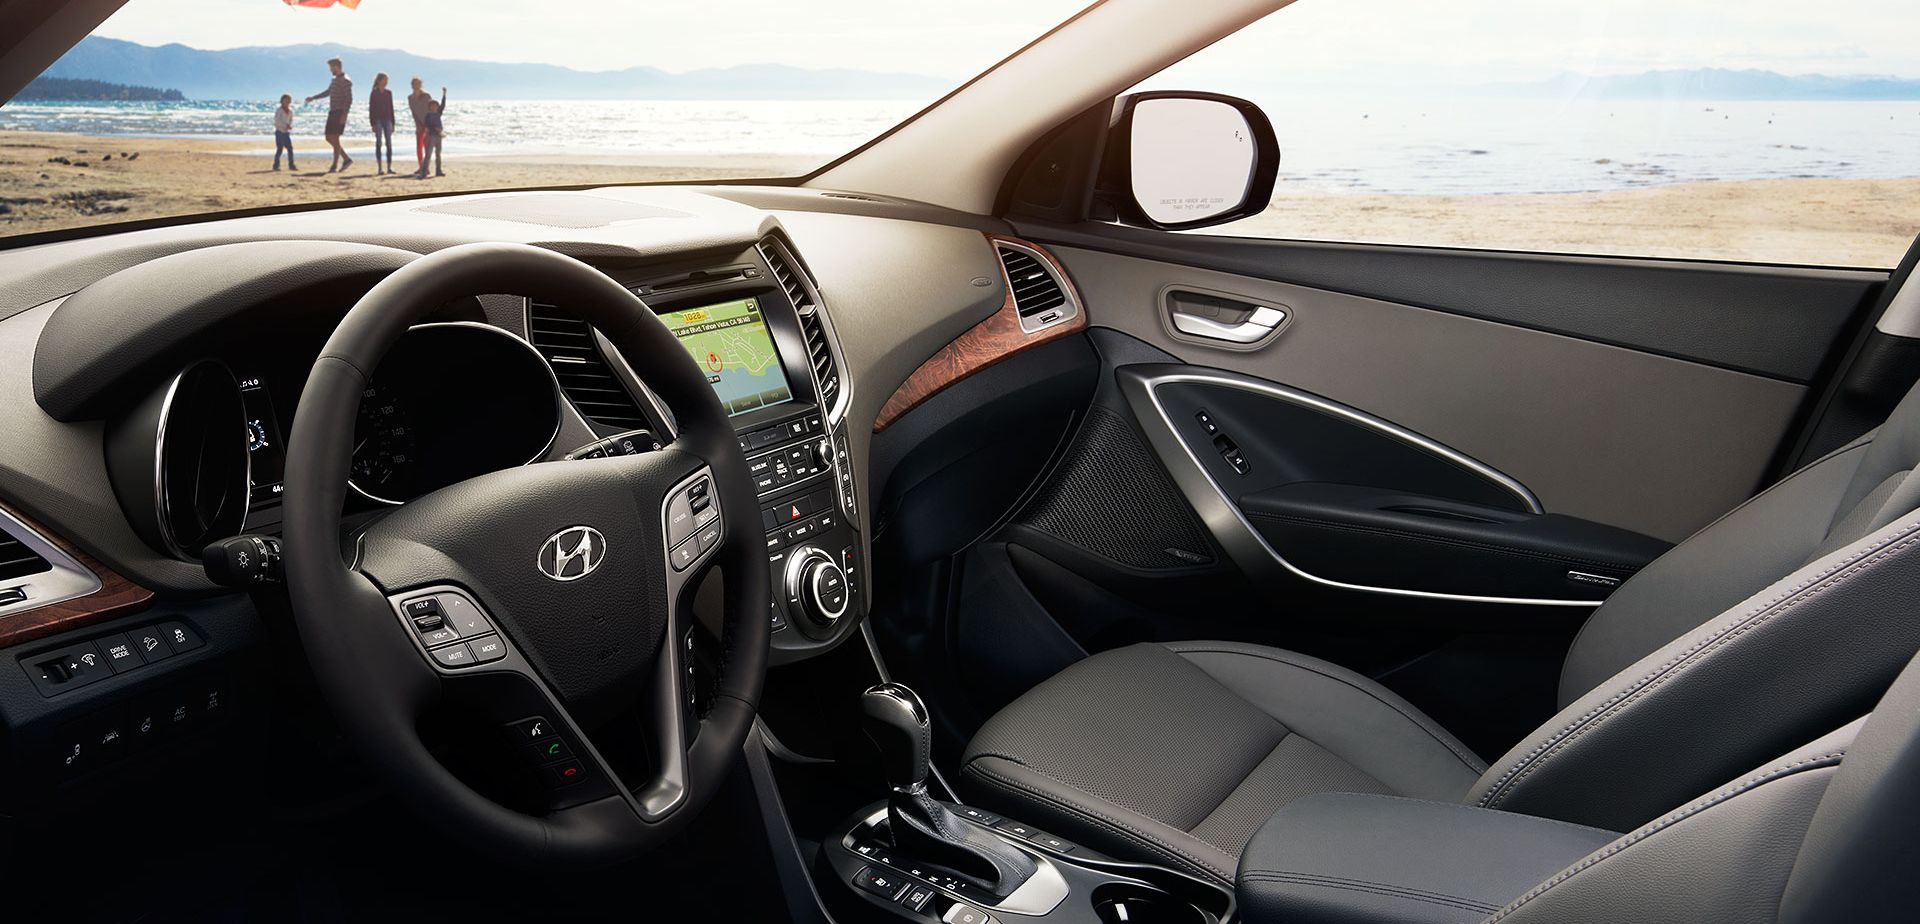 Interior of the 2018 Hyundai Santa Fe